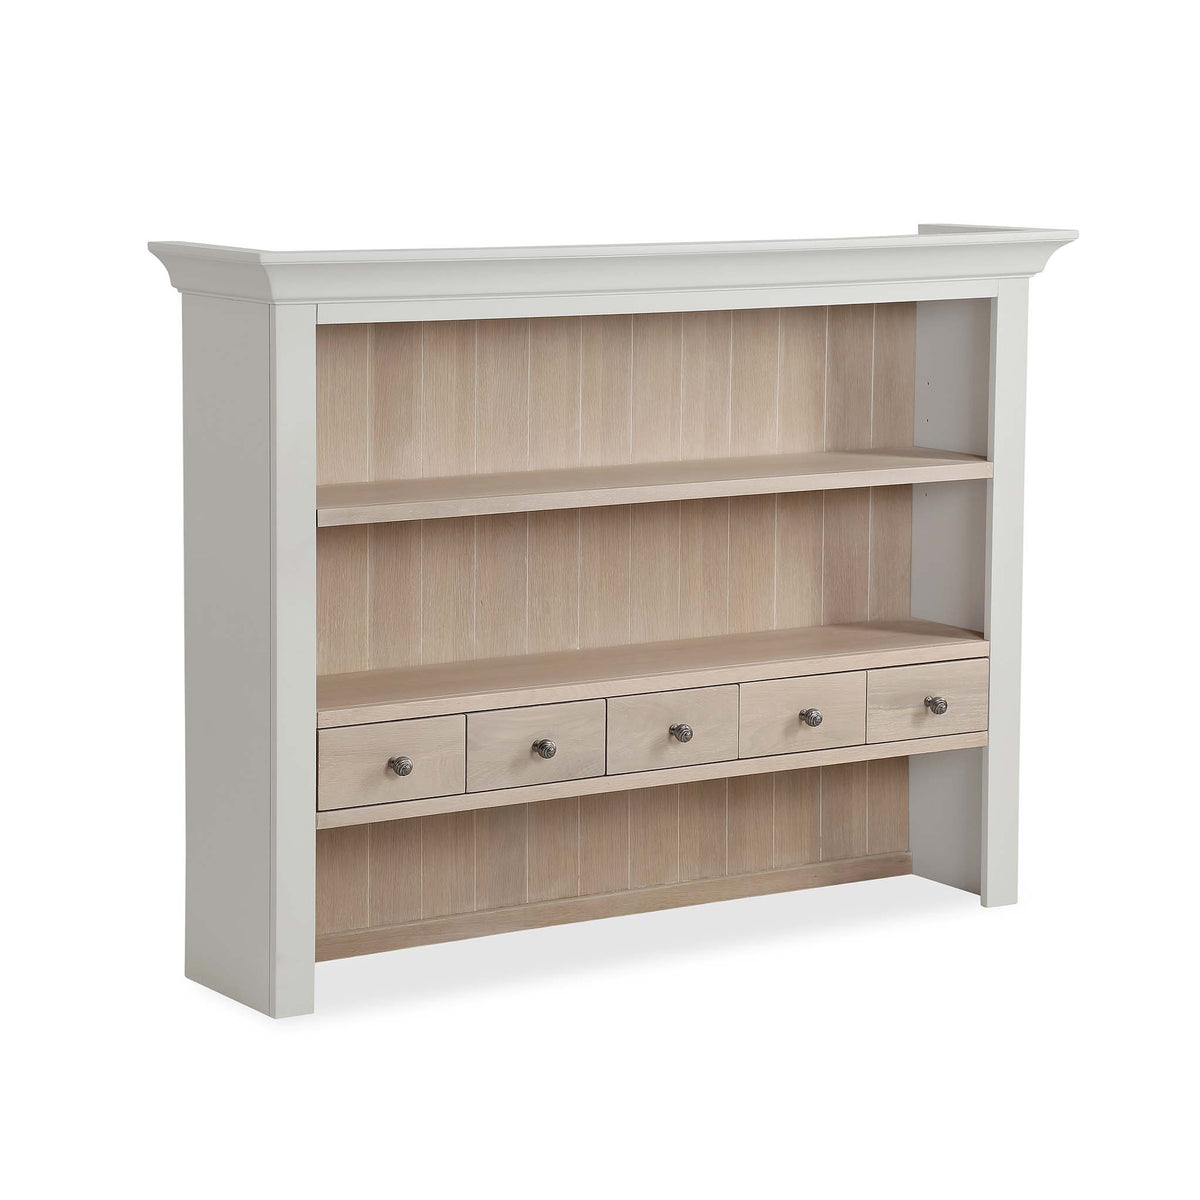 Melrose Grey Large Open Dresser Hutch from Roseland Furniture